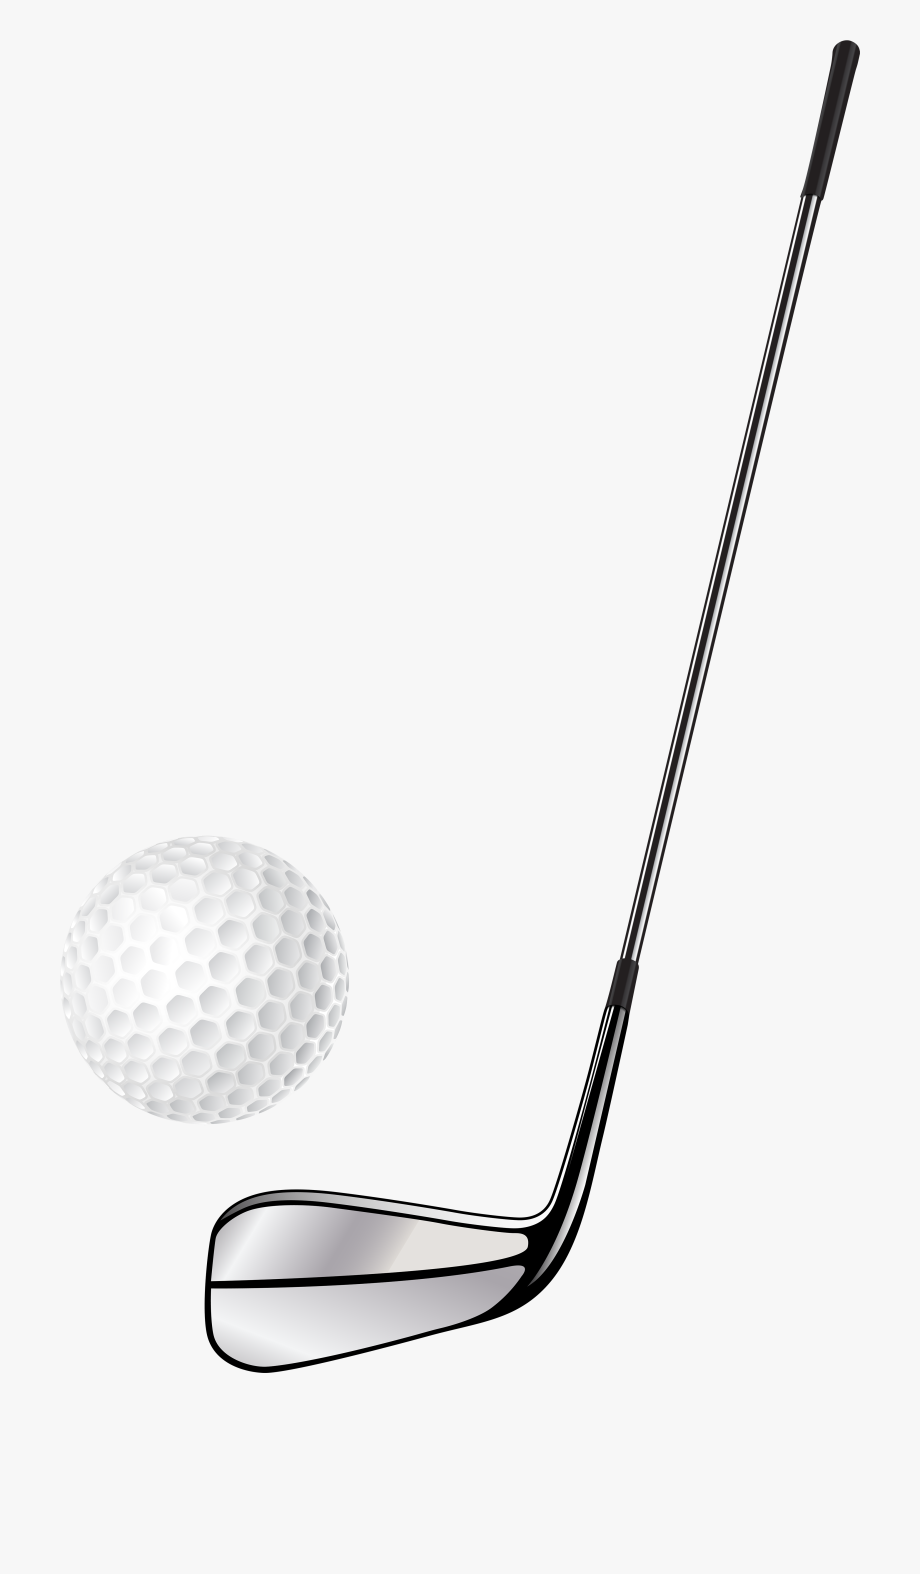 And ball png clip. Club clipart golf stick